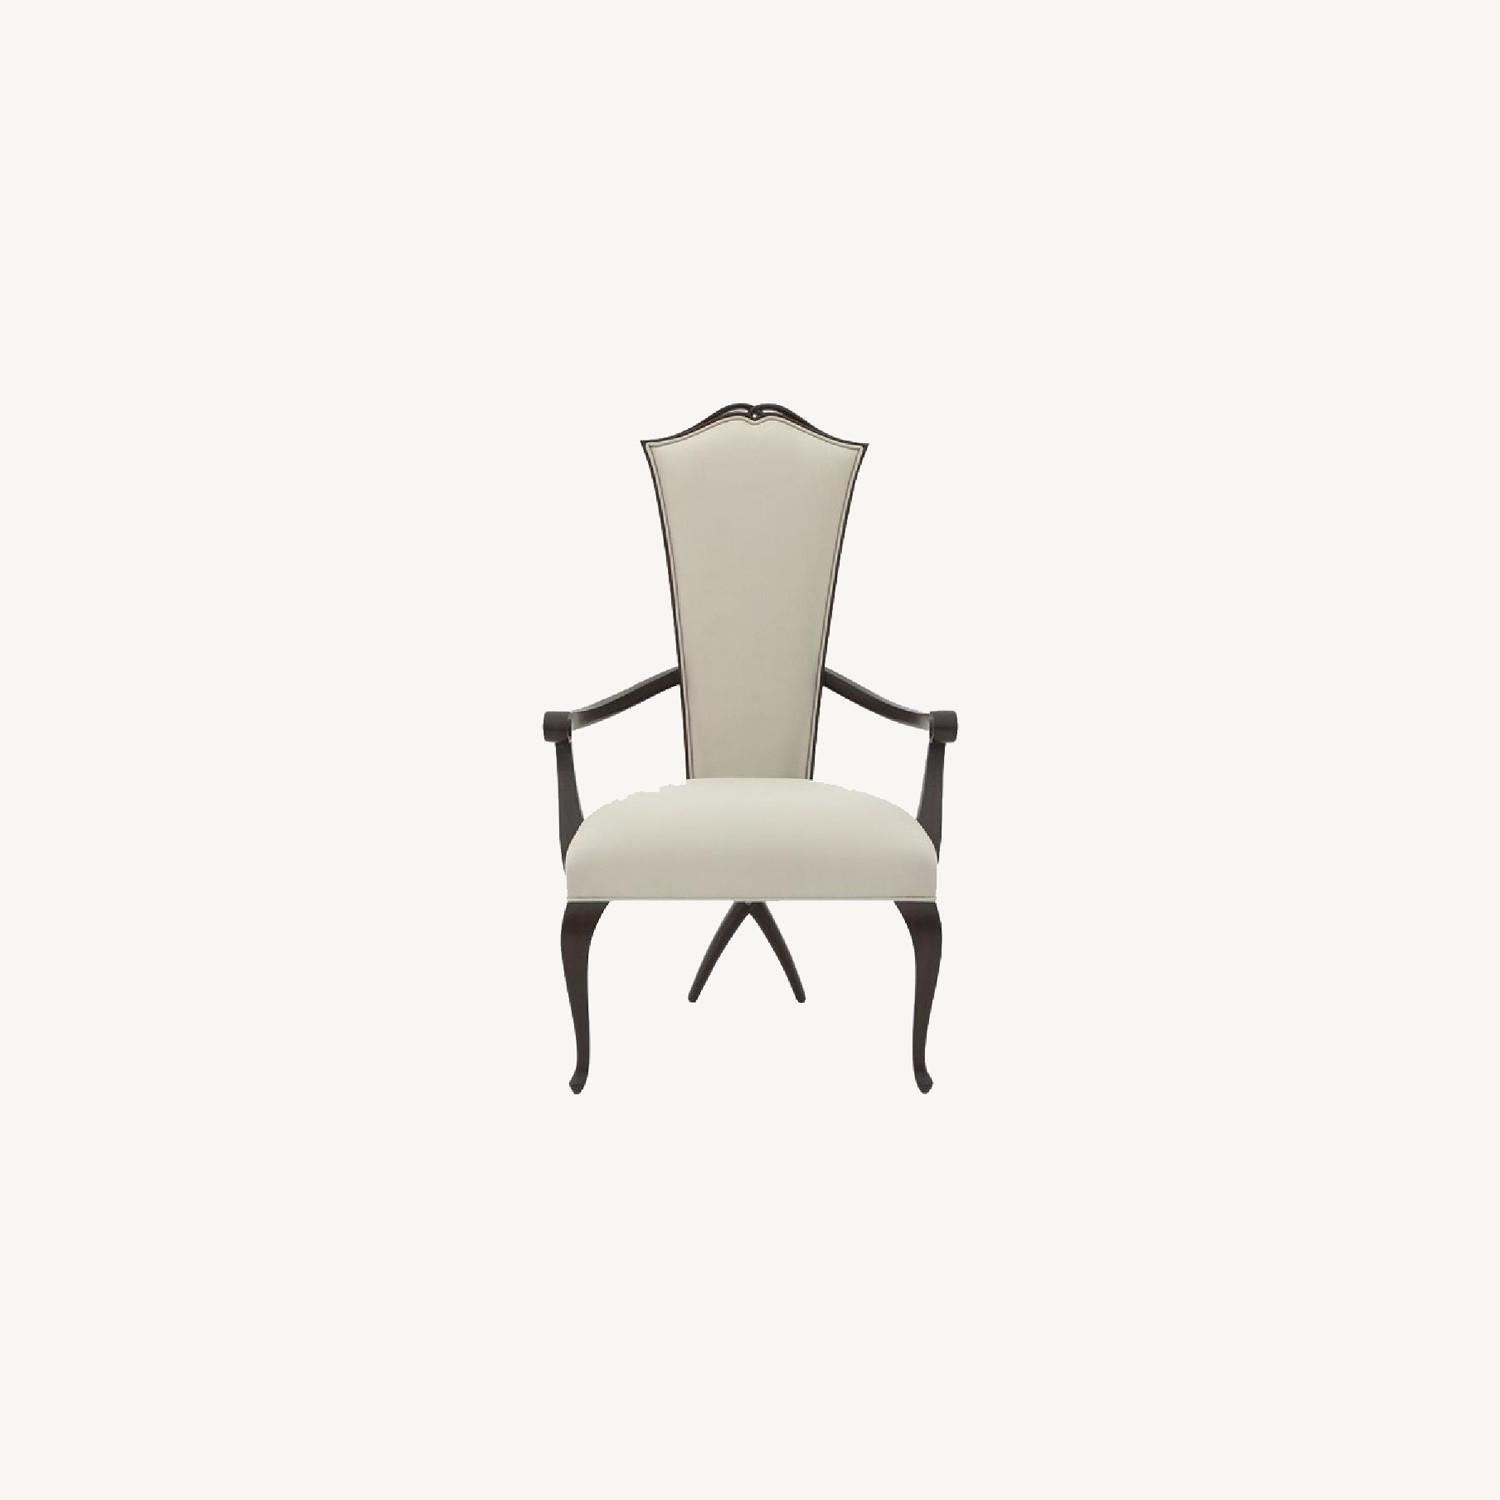 Christopher Guy Sadie Dining Chair - image-0